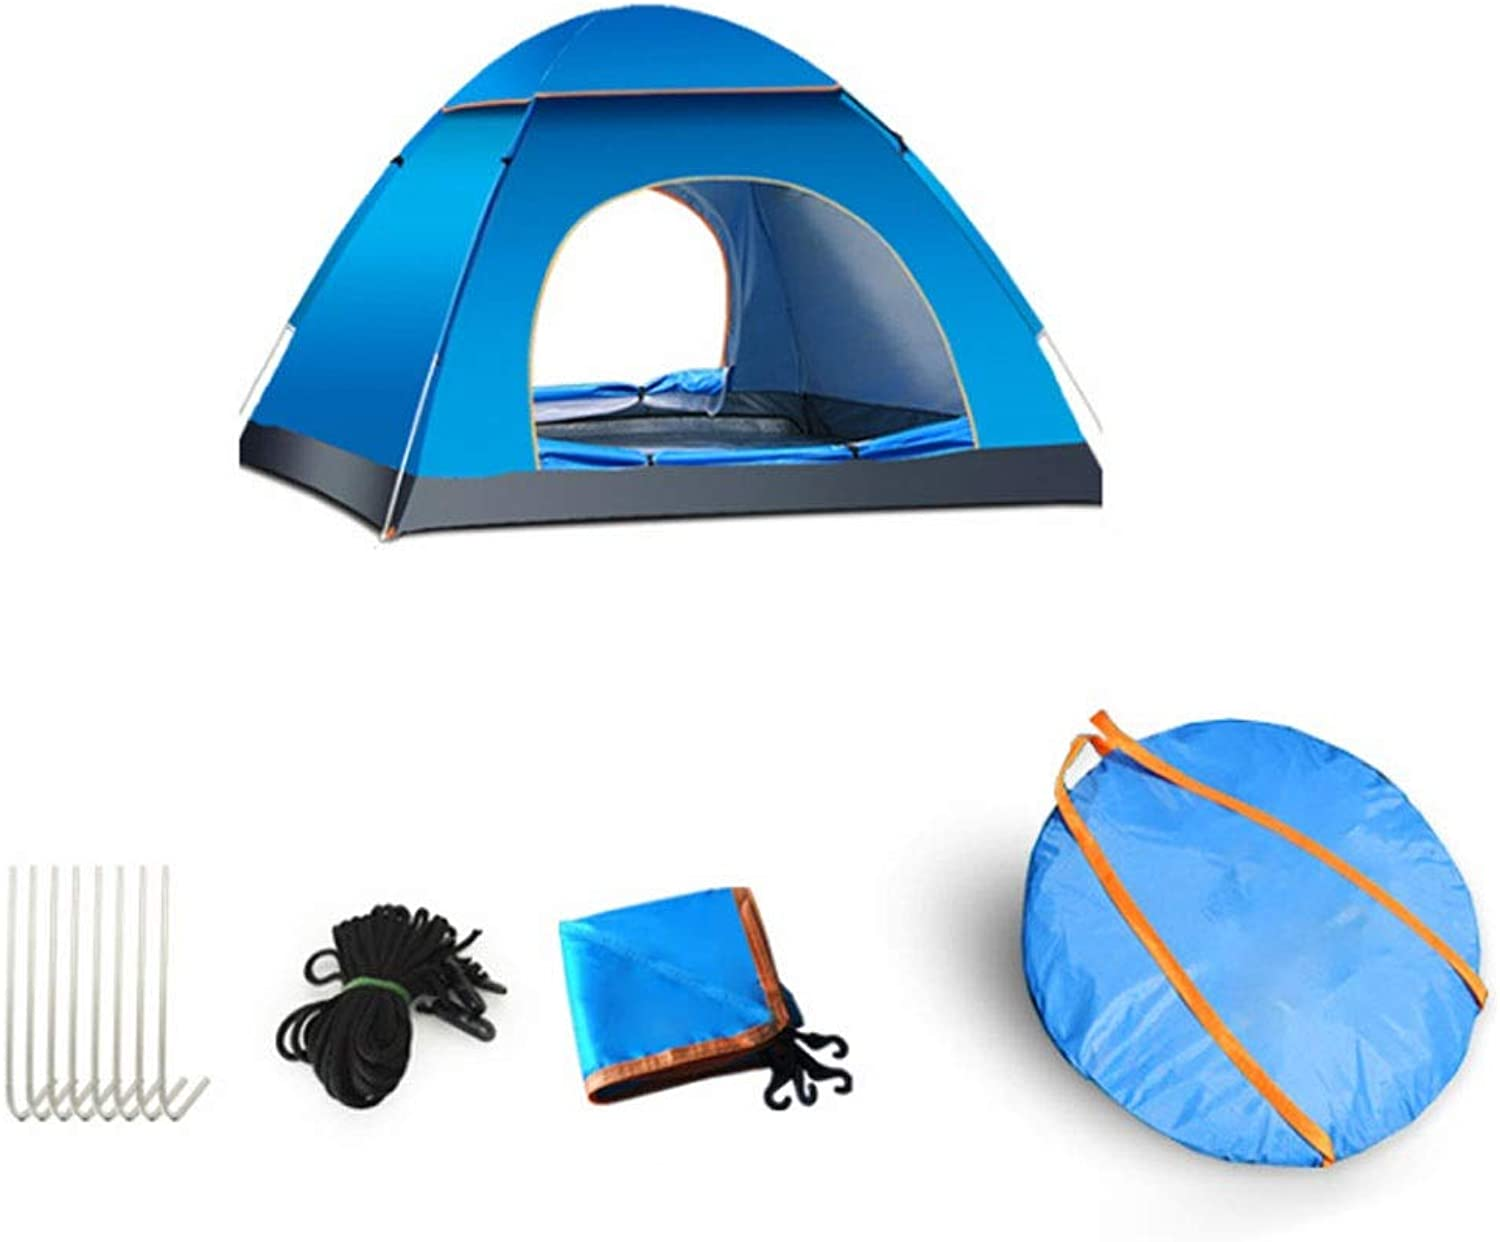 a3c3feb52187 Outdoor Camping Tent 3 Festival Camping Tent Festival Essential Dome ...